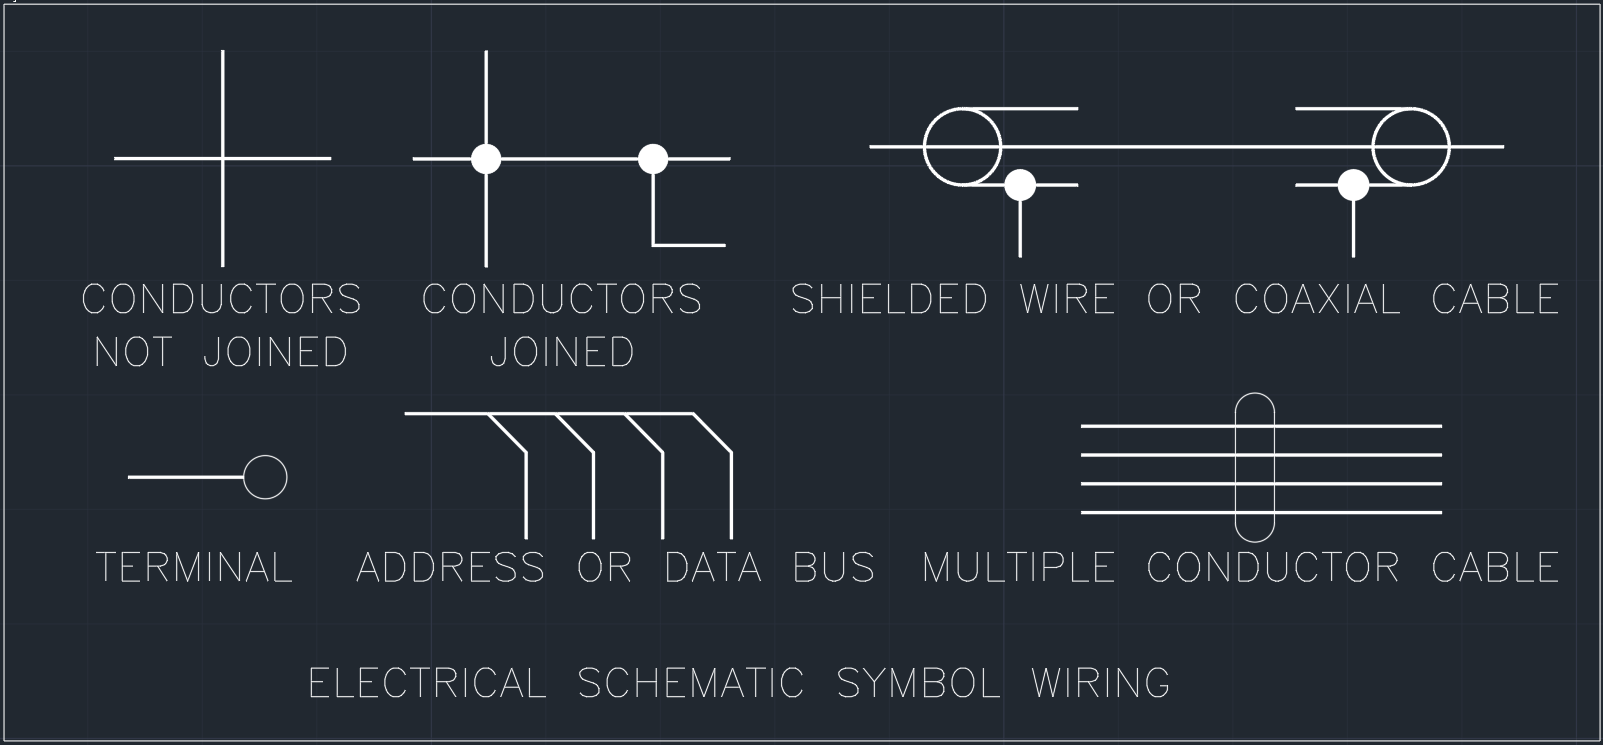 Electrical Schematic Symbol Wiring | | CAD Block And Typical DrawingCAD Block And Typical Drawing For Designers